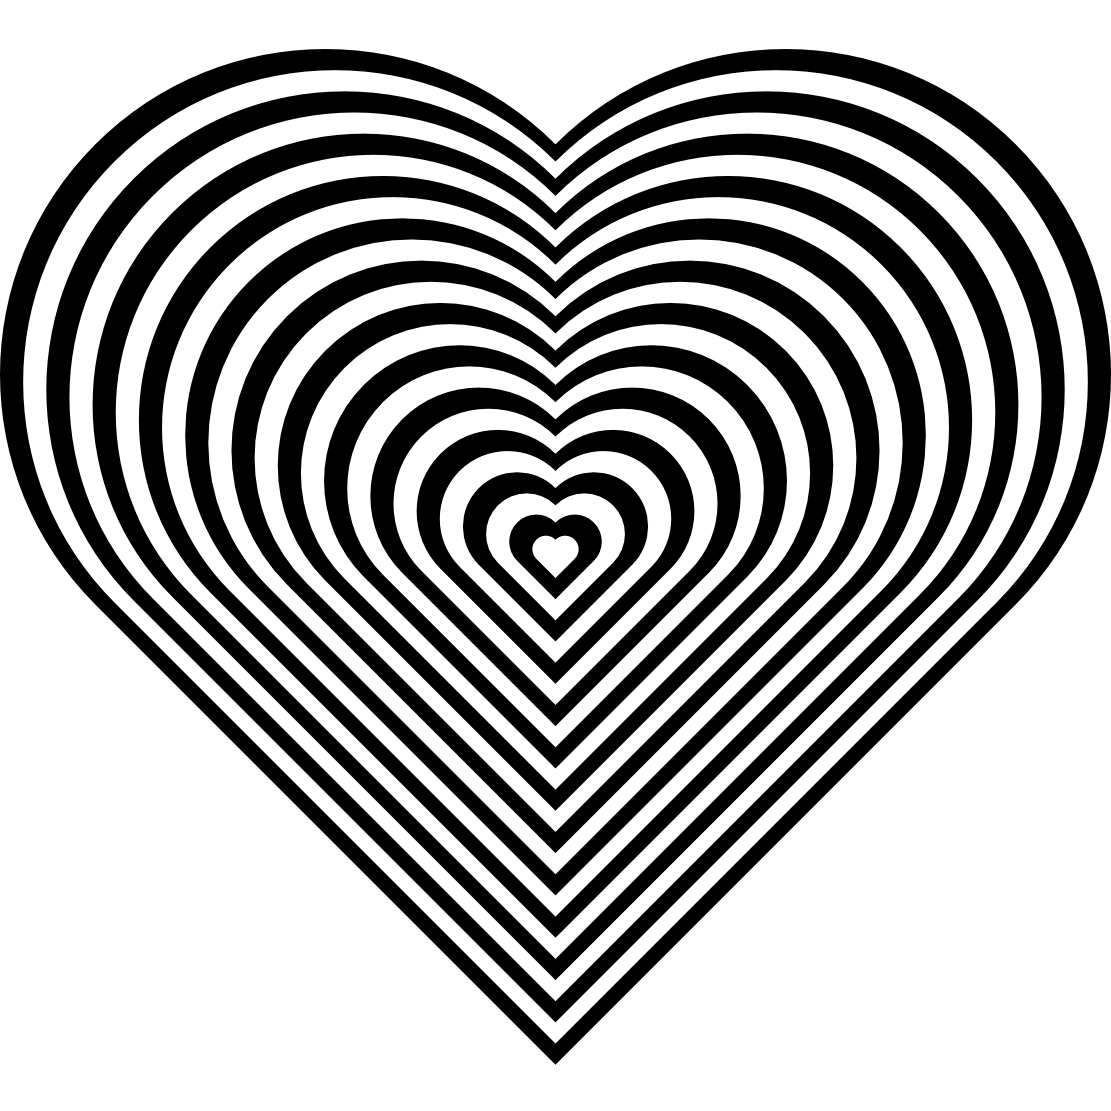 stripe zebra heart coloring book colouring sheet page ...